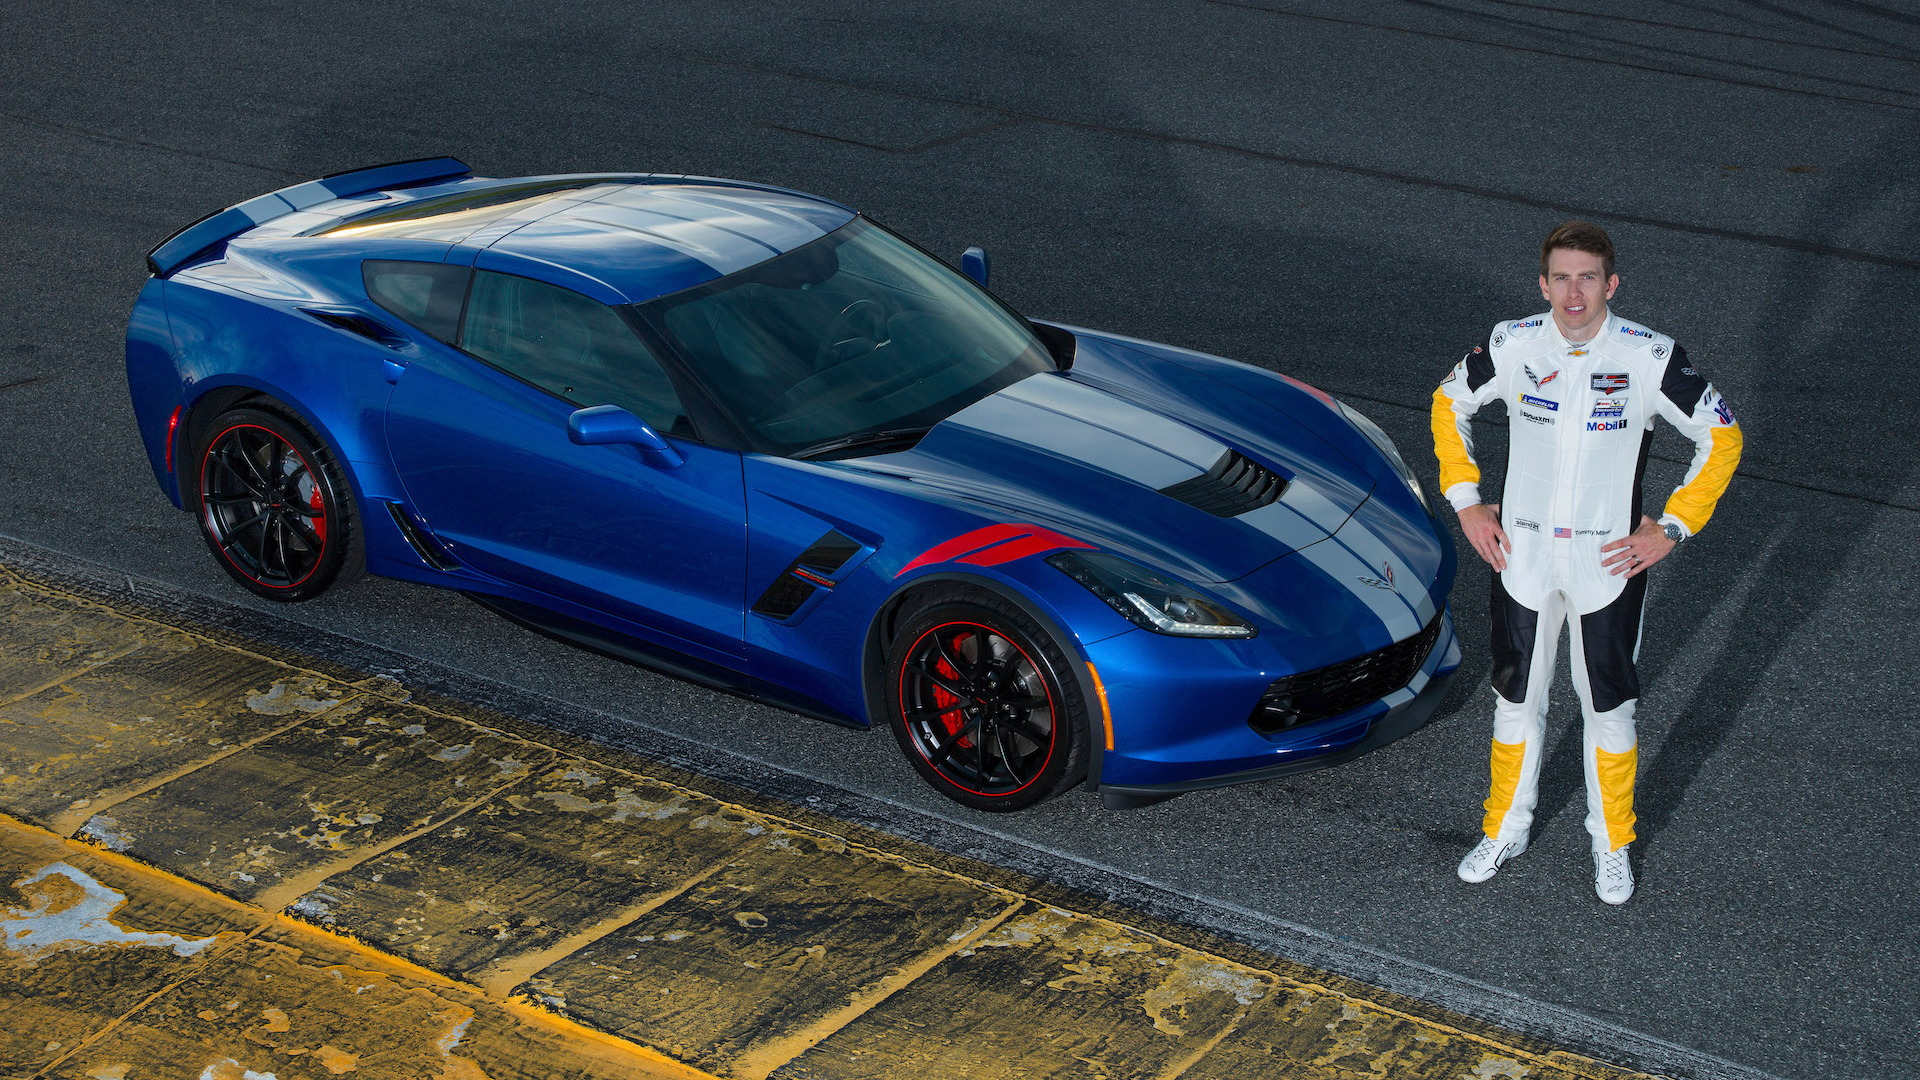 2019 Chevrolet Corvette Drivers Series special edition